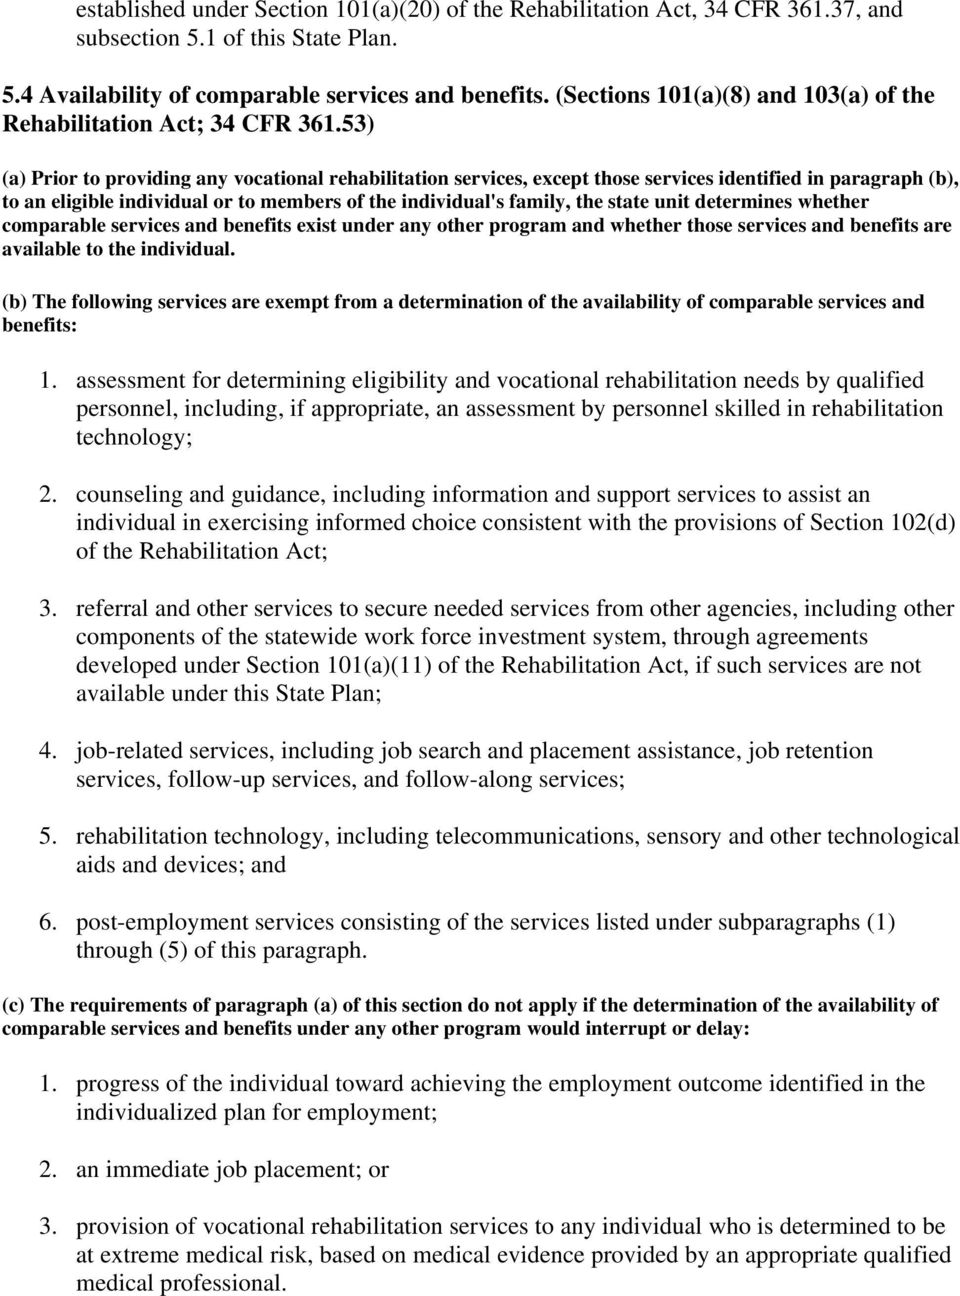 53) (a) Prior to providing any vocational rehabilitation services, except those services identified in paragraph (b), to an eligible individual or to members of the individual's family, the state